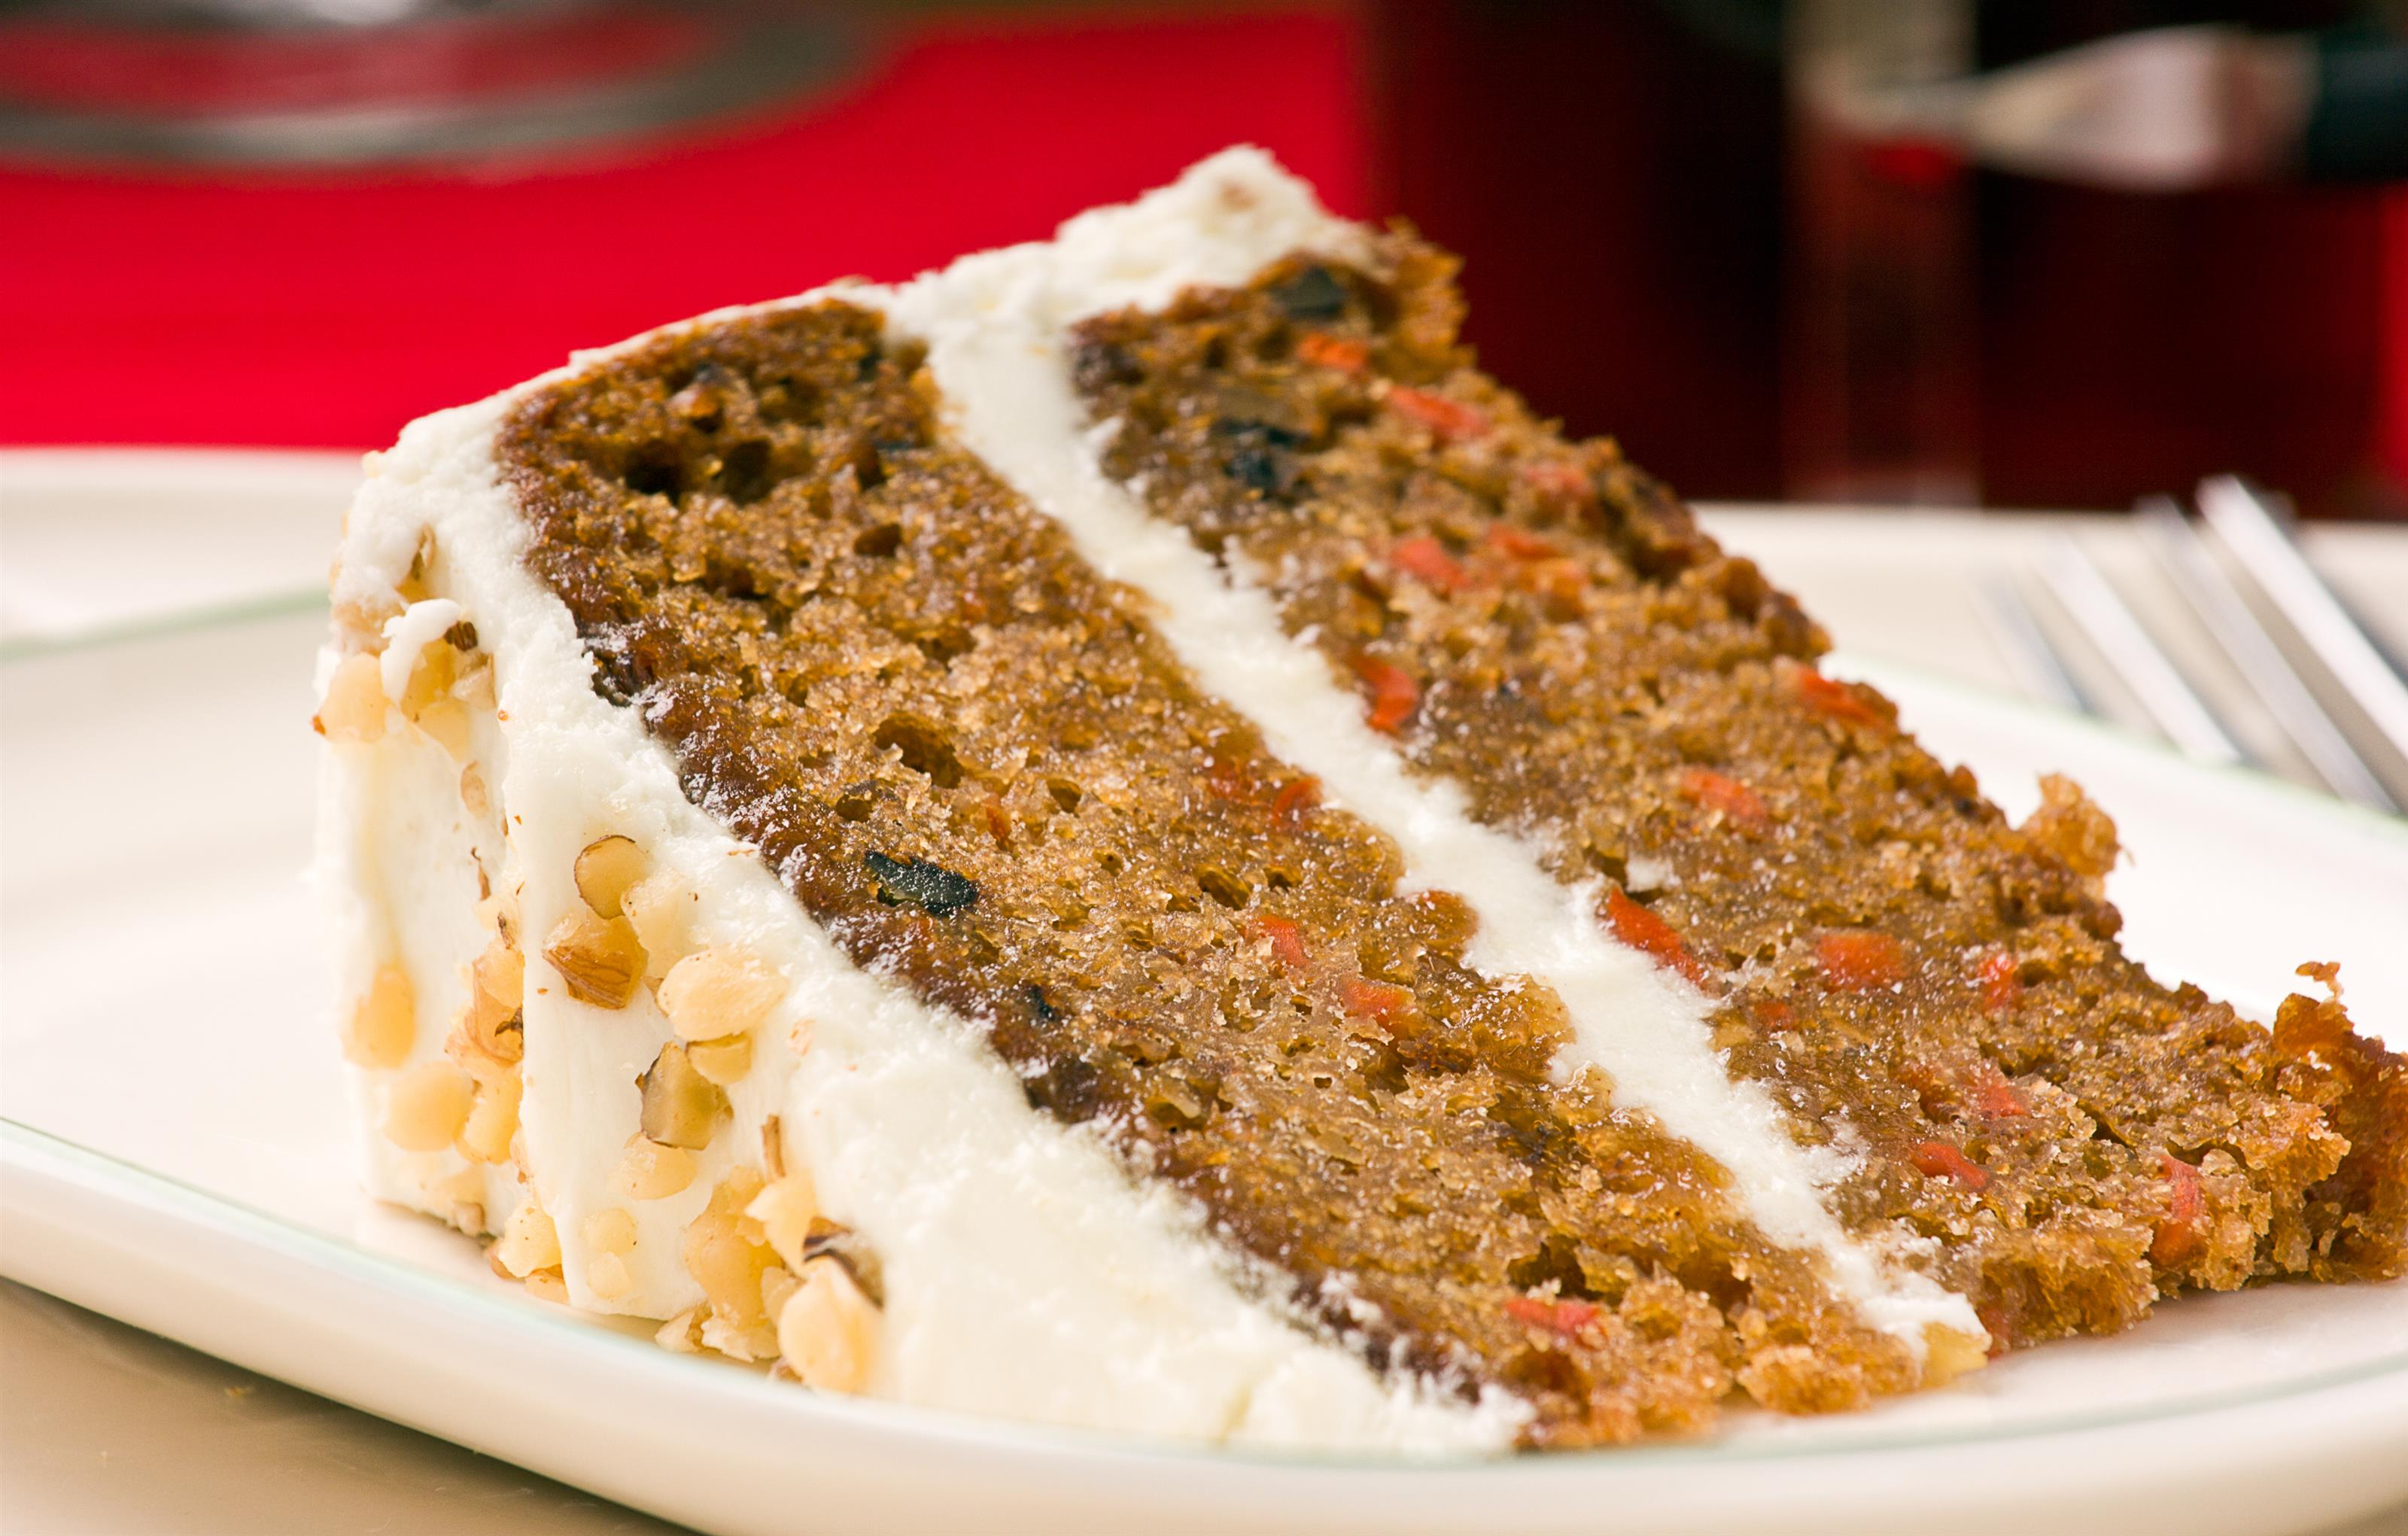 Tea for Two - Slice of Carrot Cake